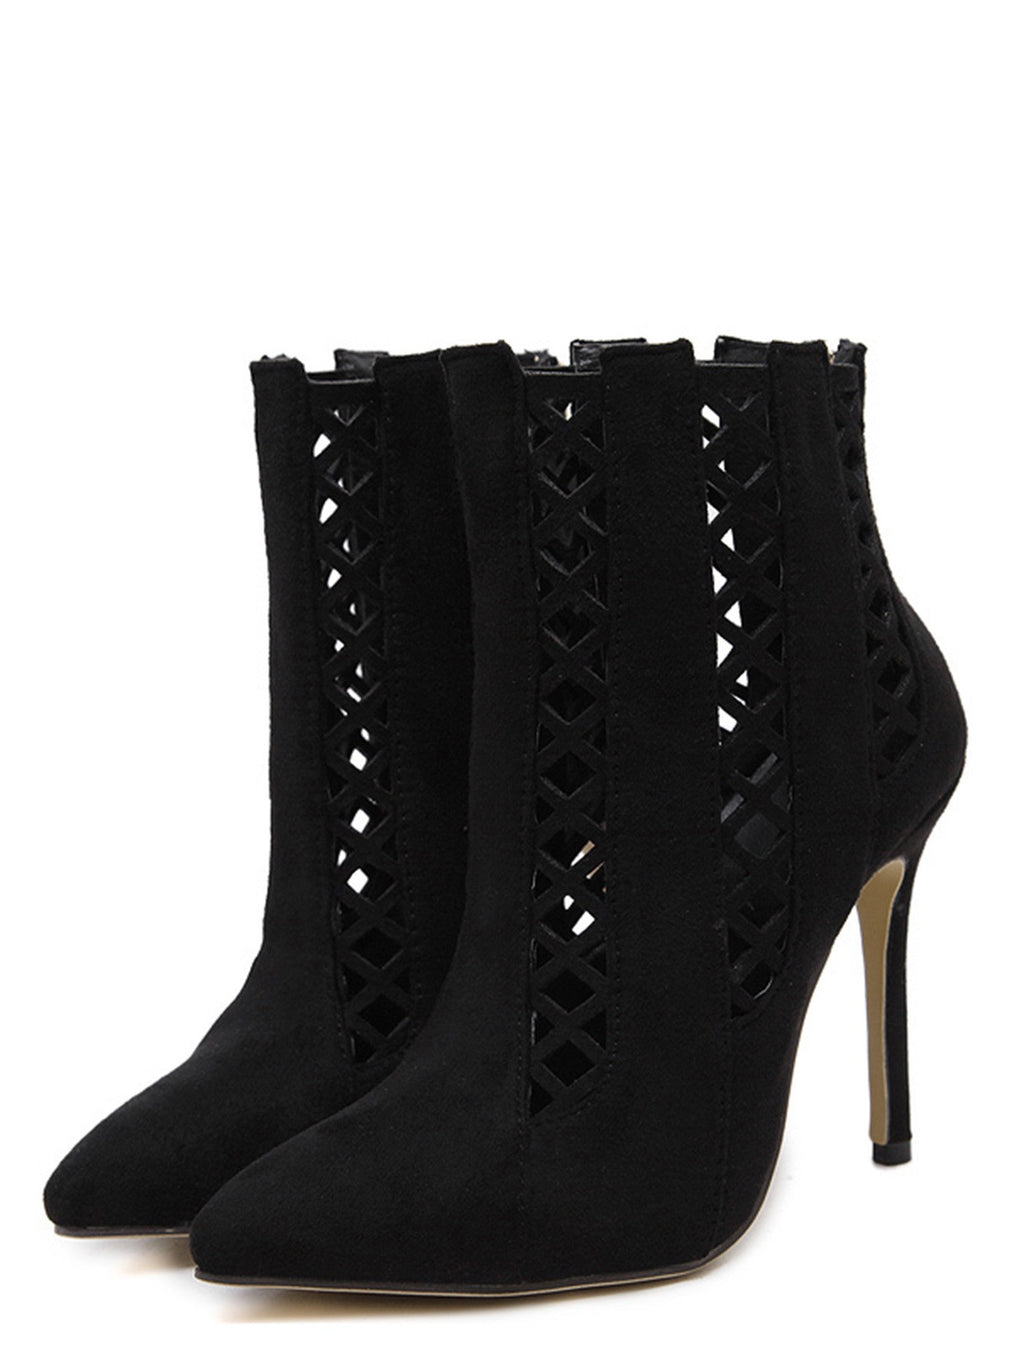 Olivia black ankle boots